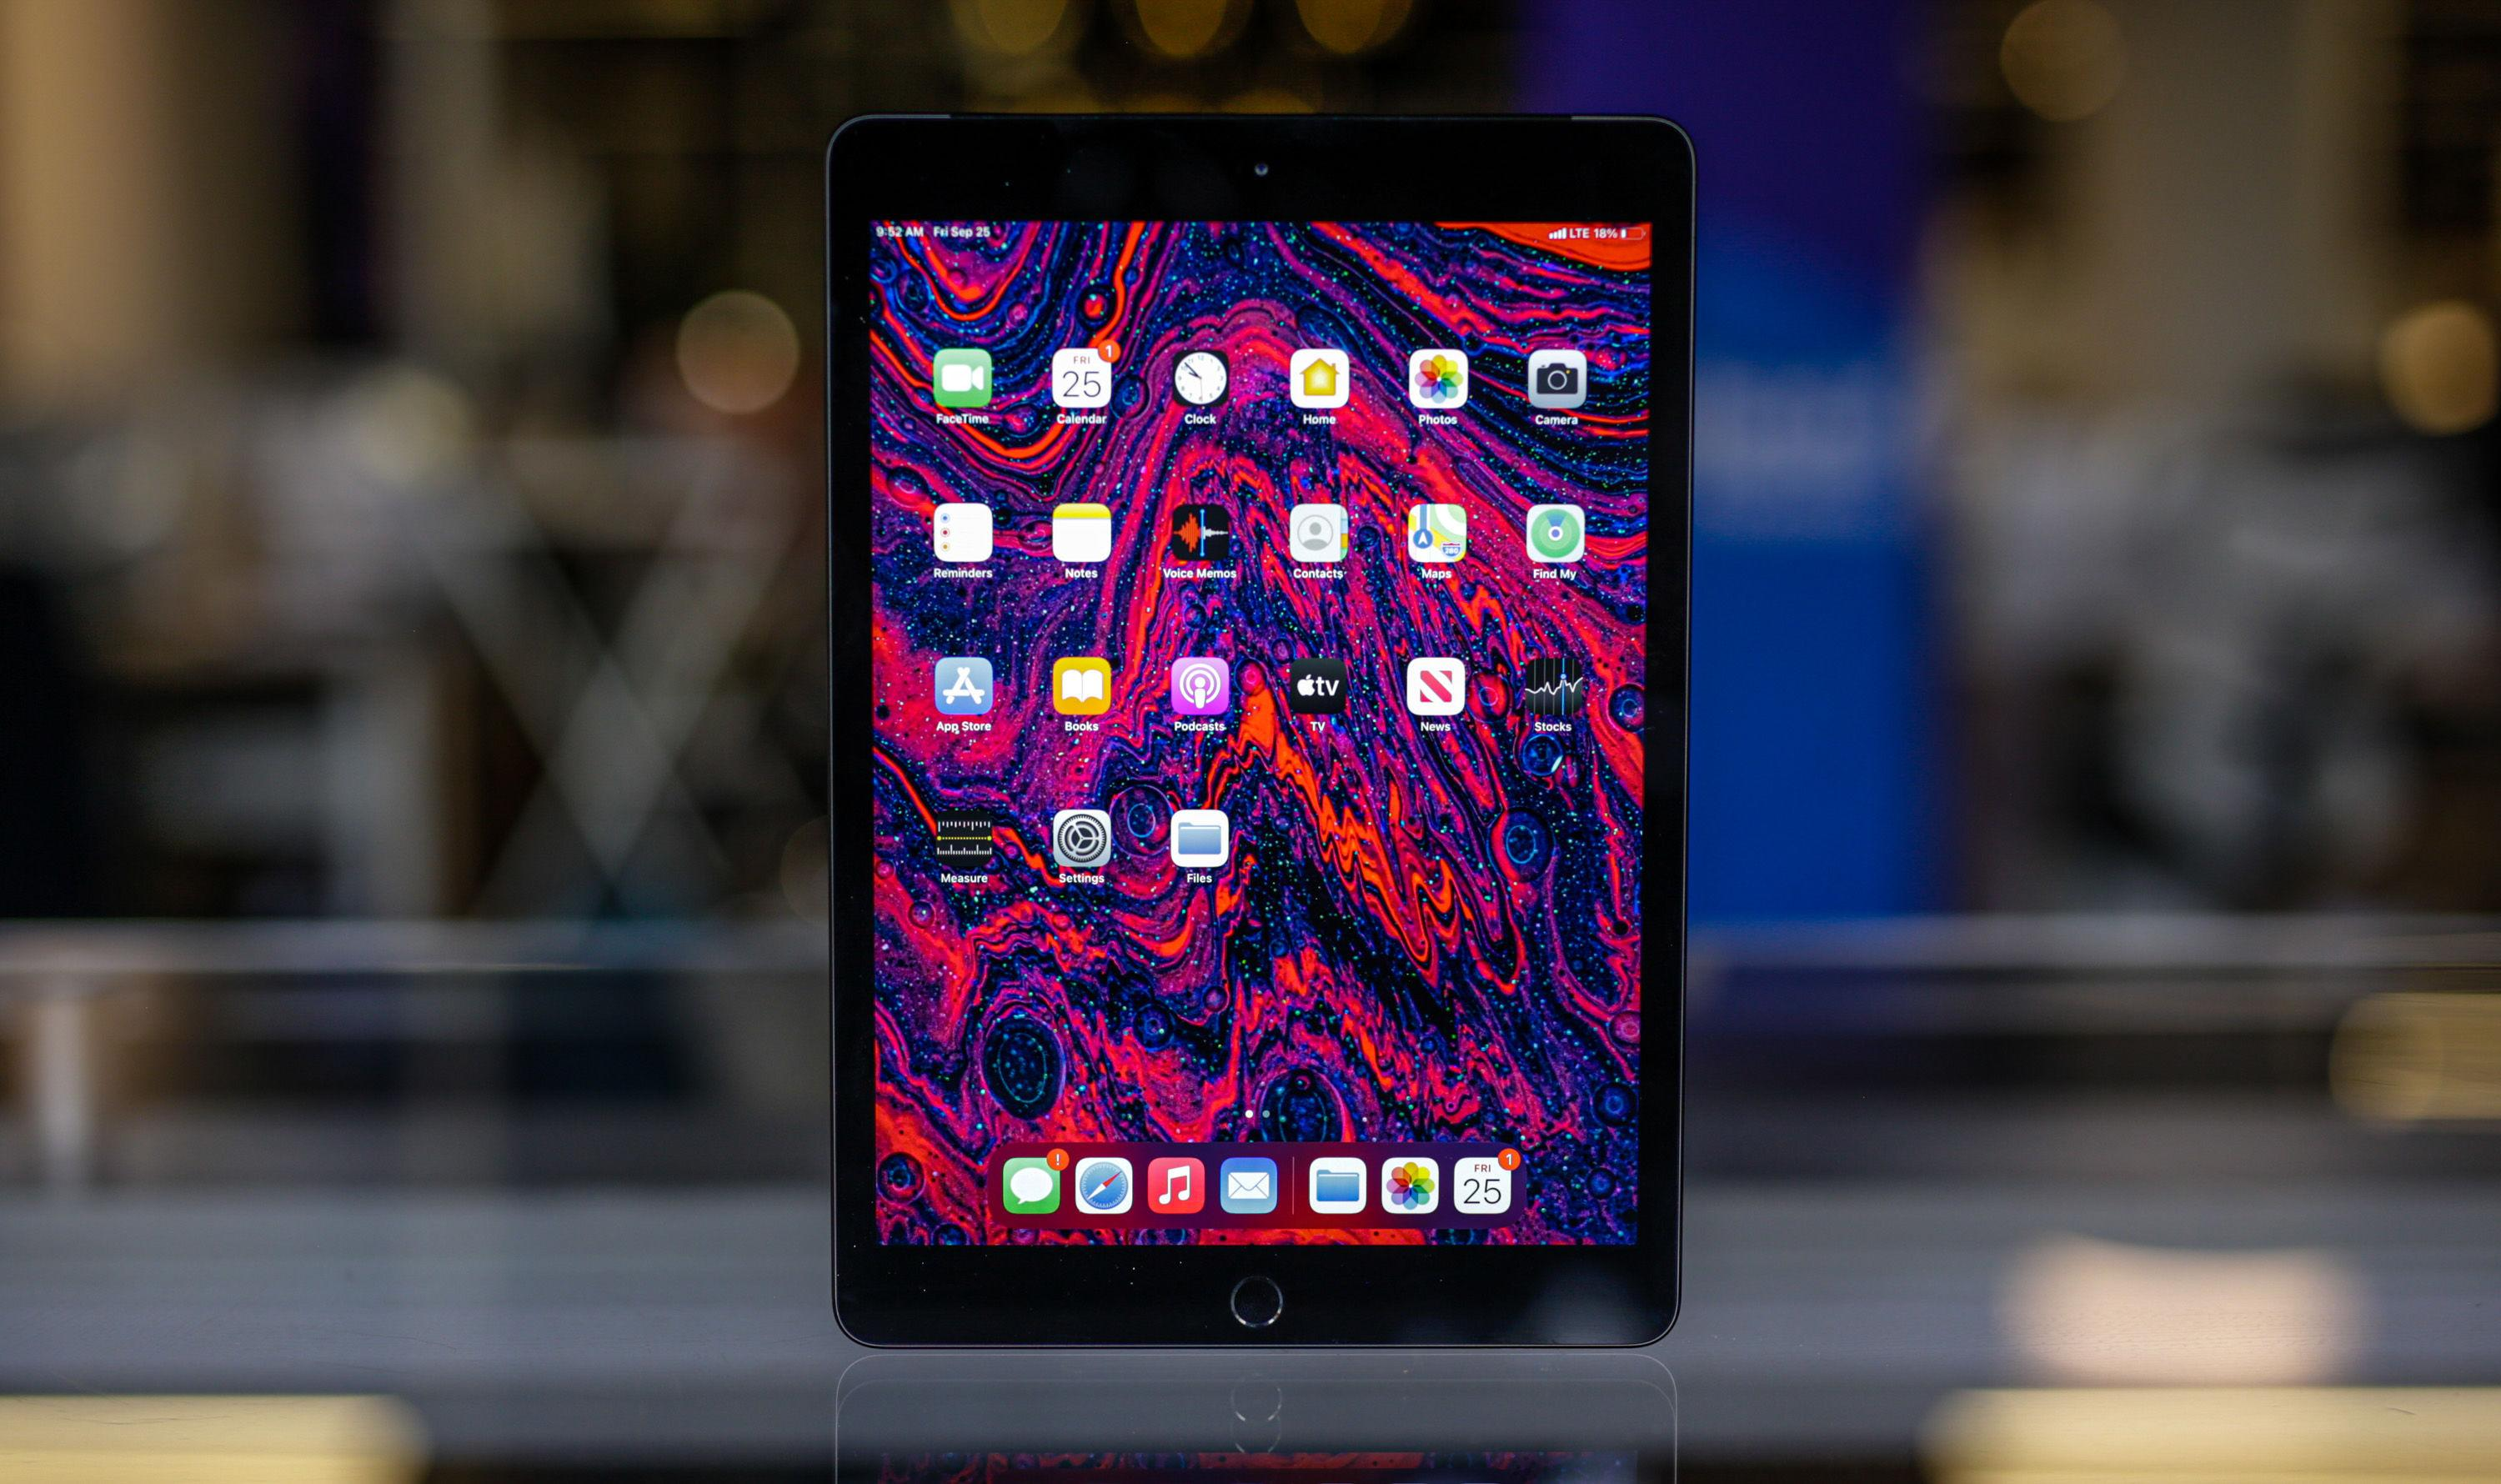 Apple's 10.2-inch iPad returns to a record low of $299 at Amazon - Engadget